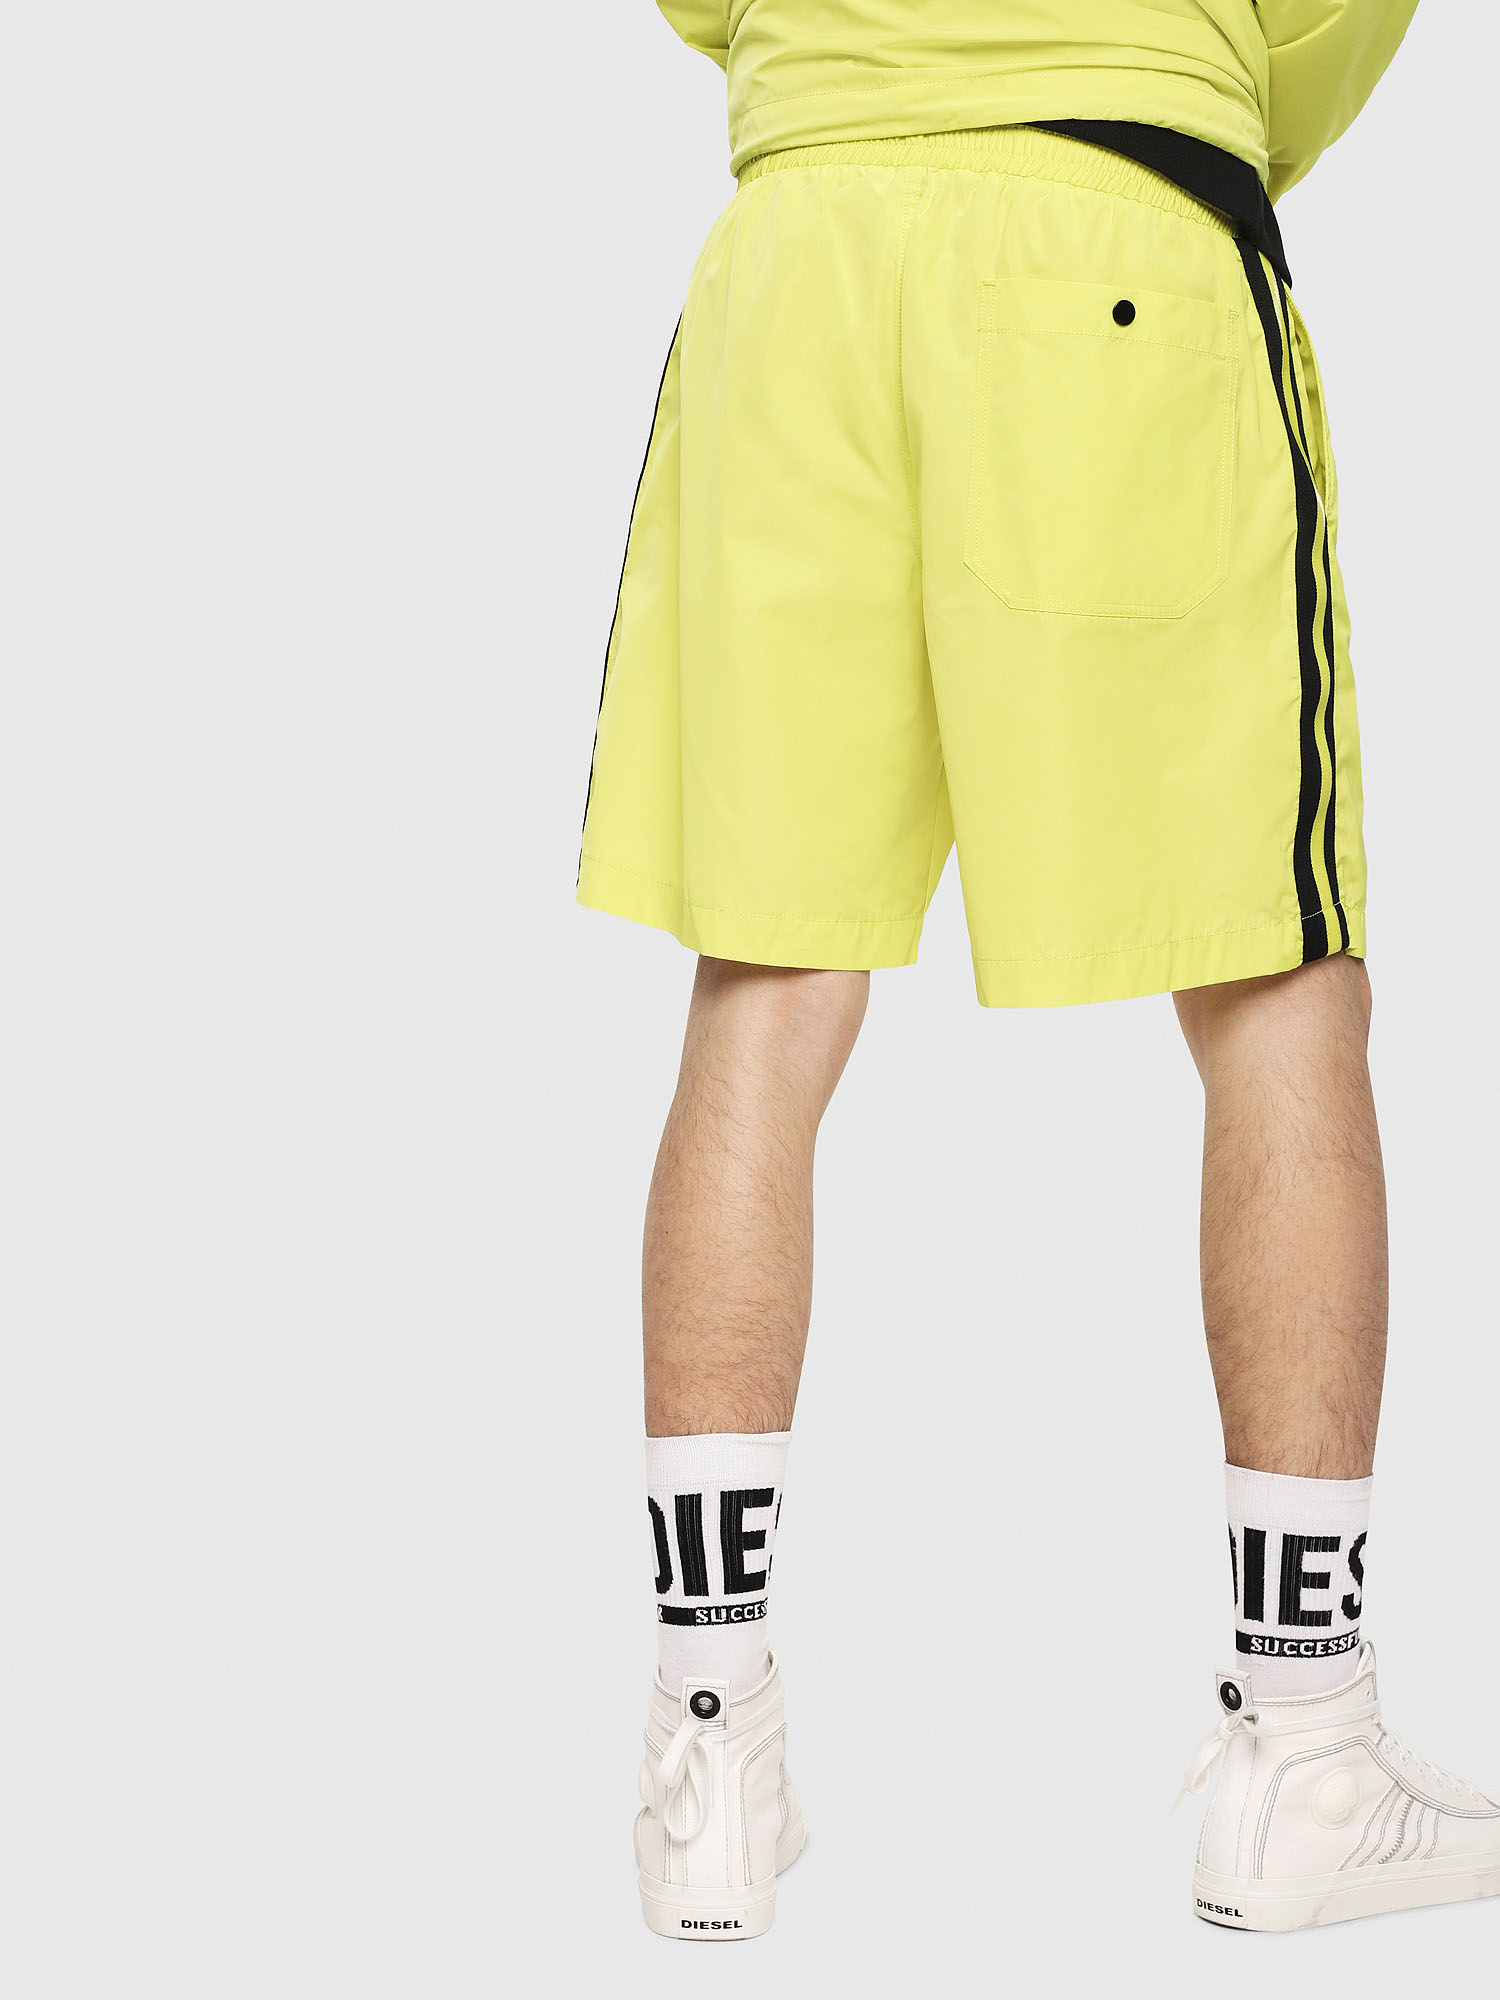 Diesel - P-BOXIE,  - Shorts - Image 2